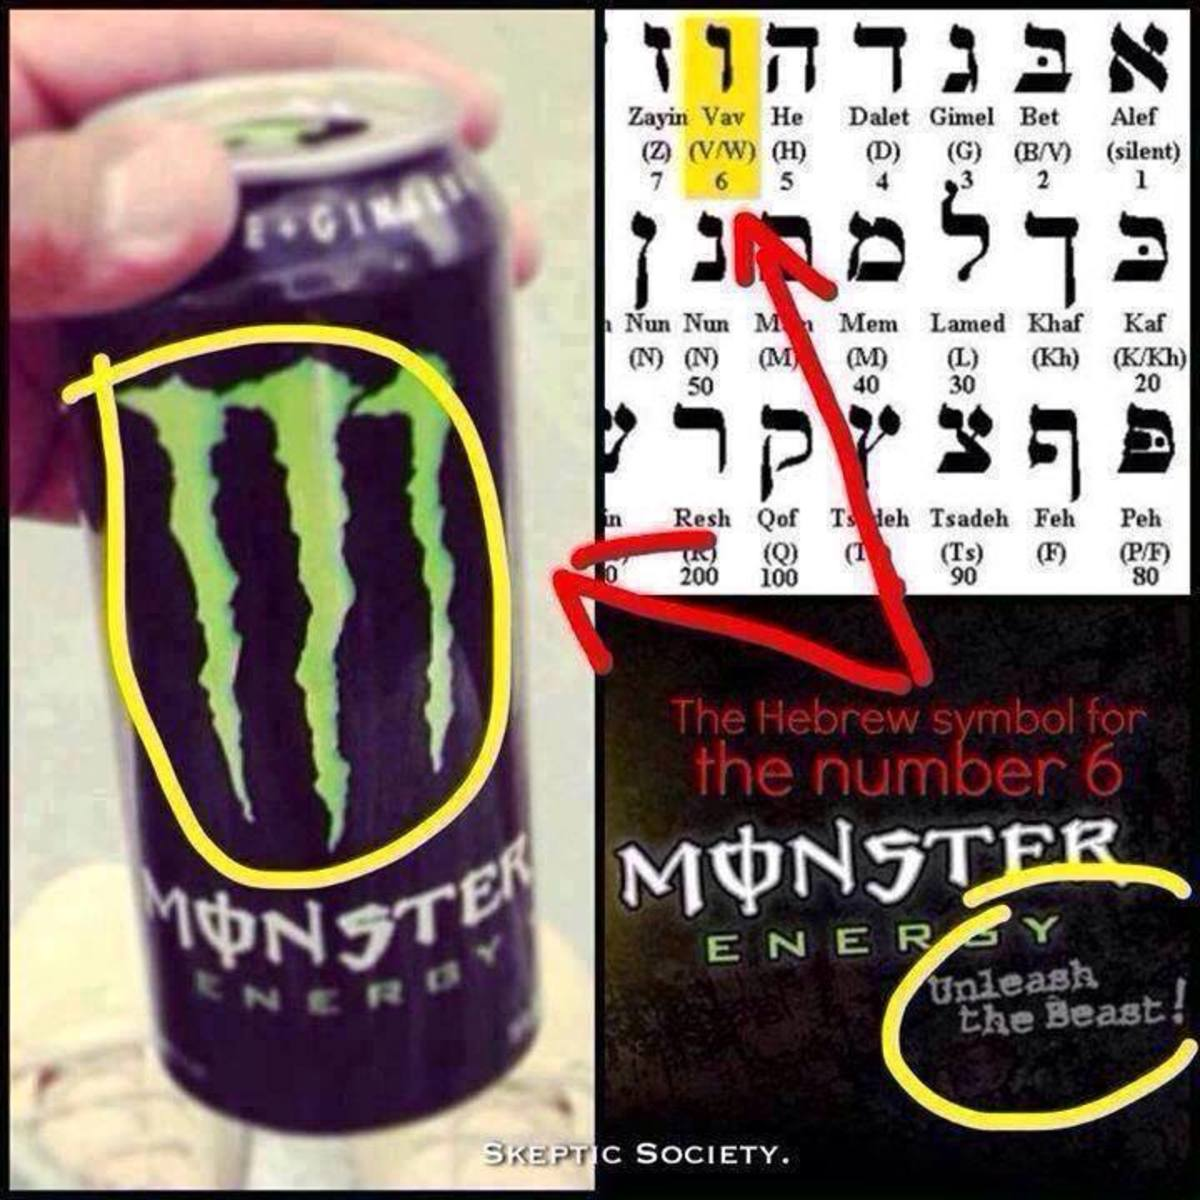 illuminati-symbols-hidden-in-corporate-logos